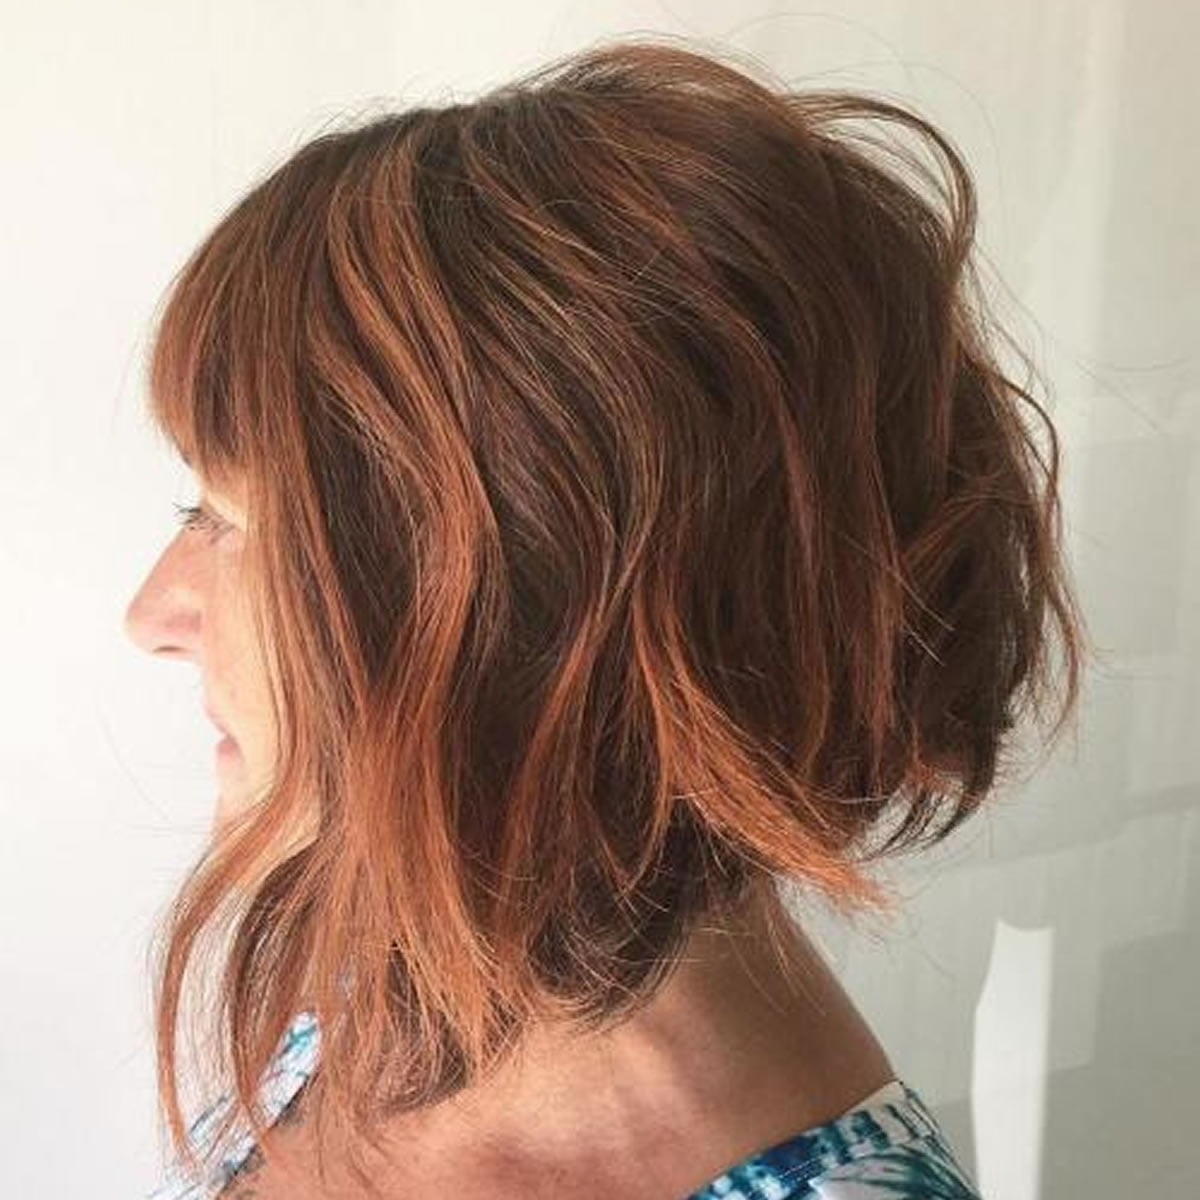 The Second New Year Haircut Is a Thing—and These Styles Are Trending picture